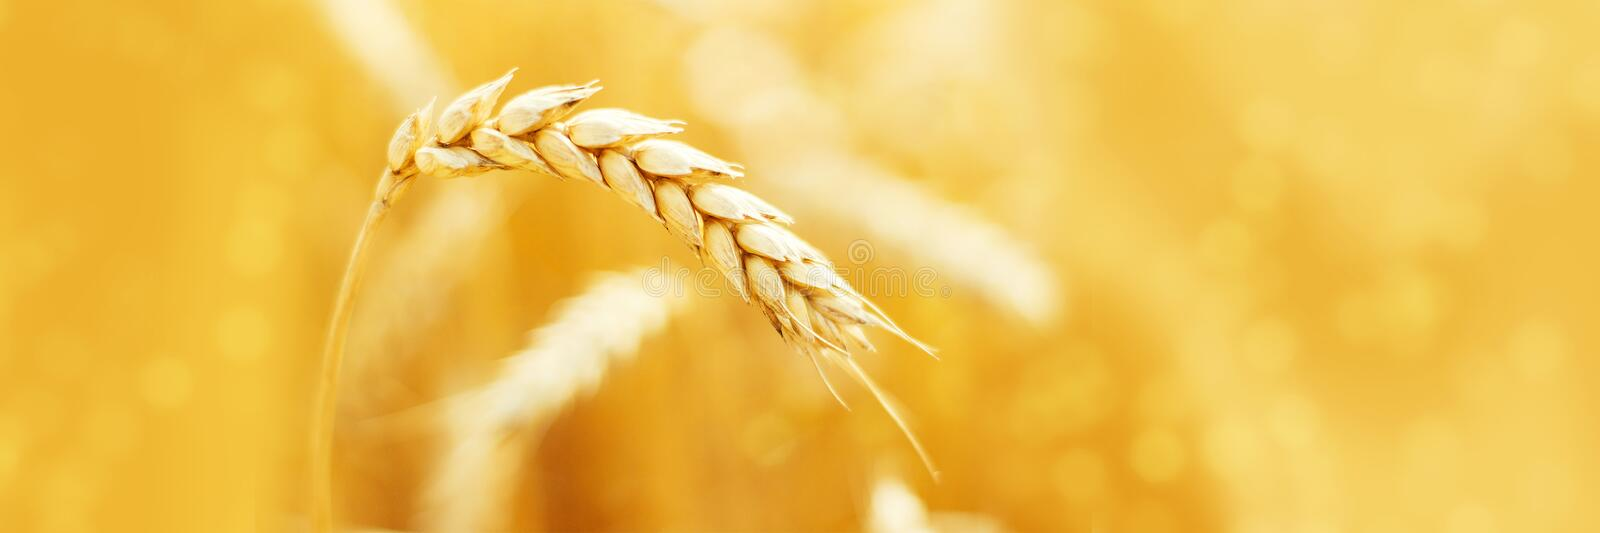 Ripe ears of rye in field during harvest. Agriculture summer landscape. Rural scene. Macro. Panoramic image royalty free stock photos